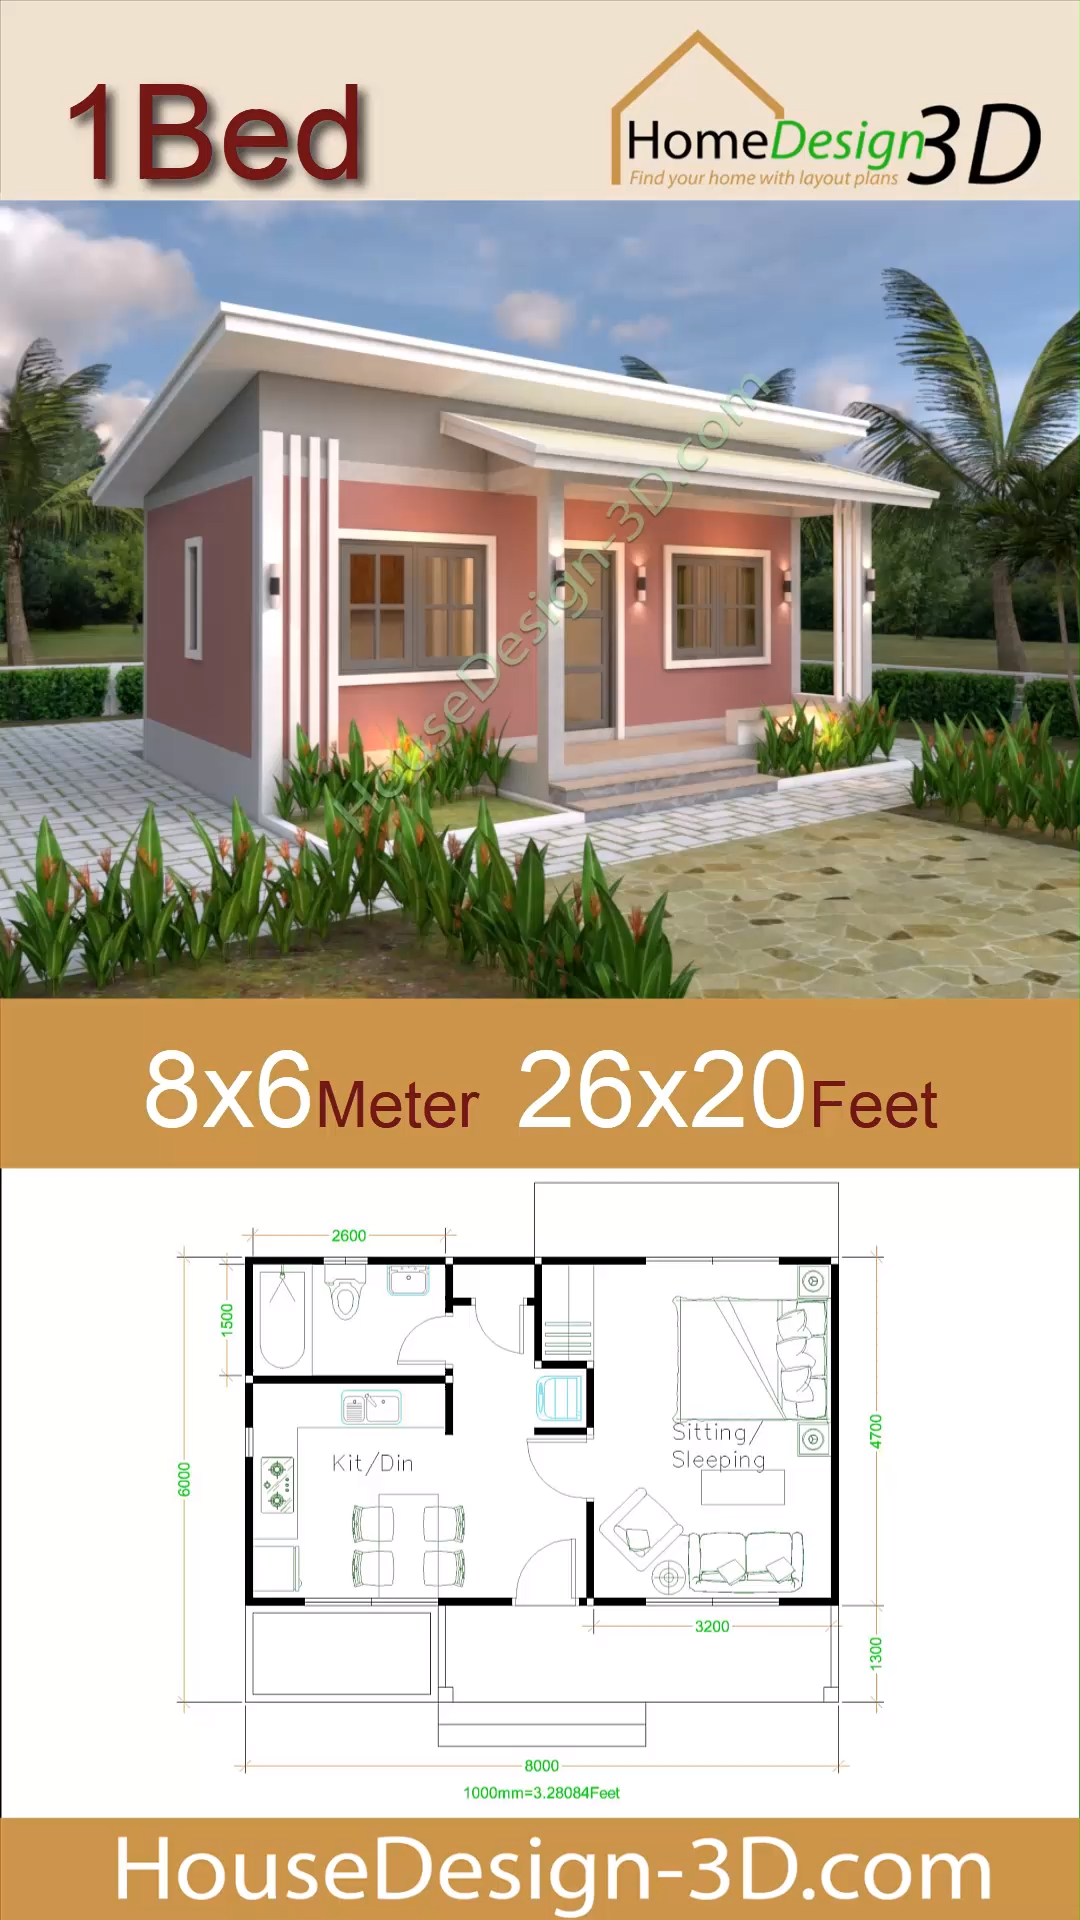 Small House Plans 8x6 With One Bedrooms Shed Roof Video Small House Design House Plans Small House Layout